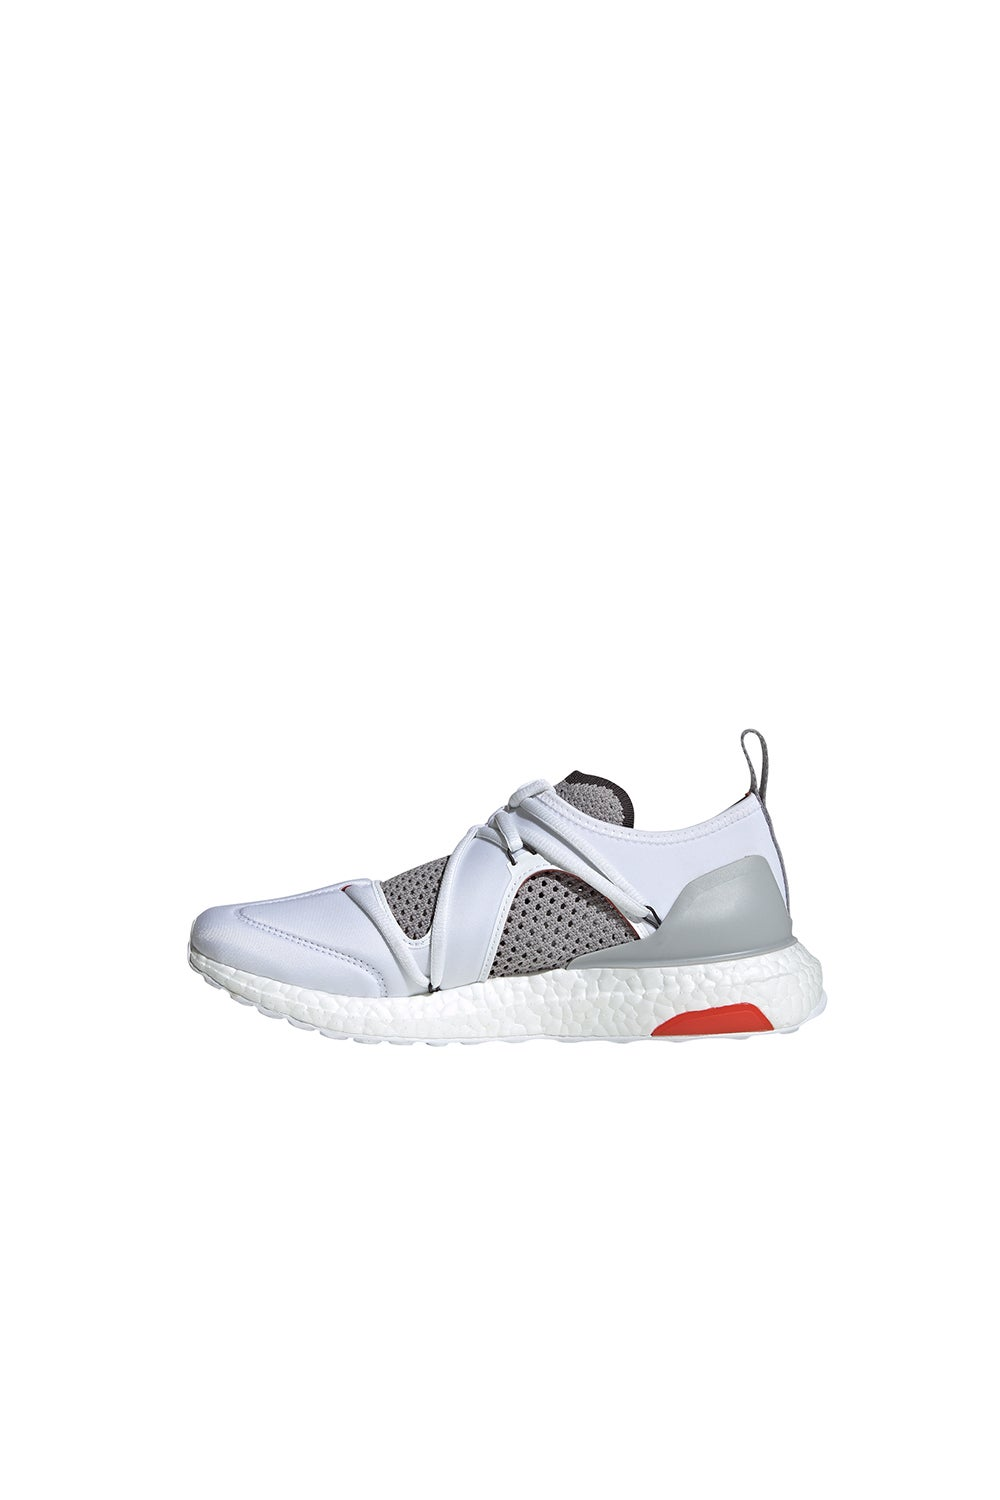 adidas by Stella McCartney Ultraboost T. S. Pearl Grey/ Rust Red SMC/ White